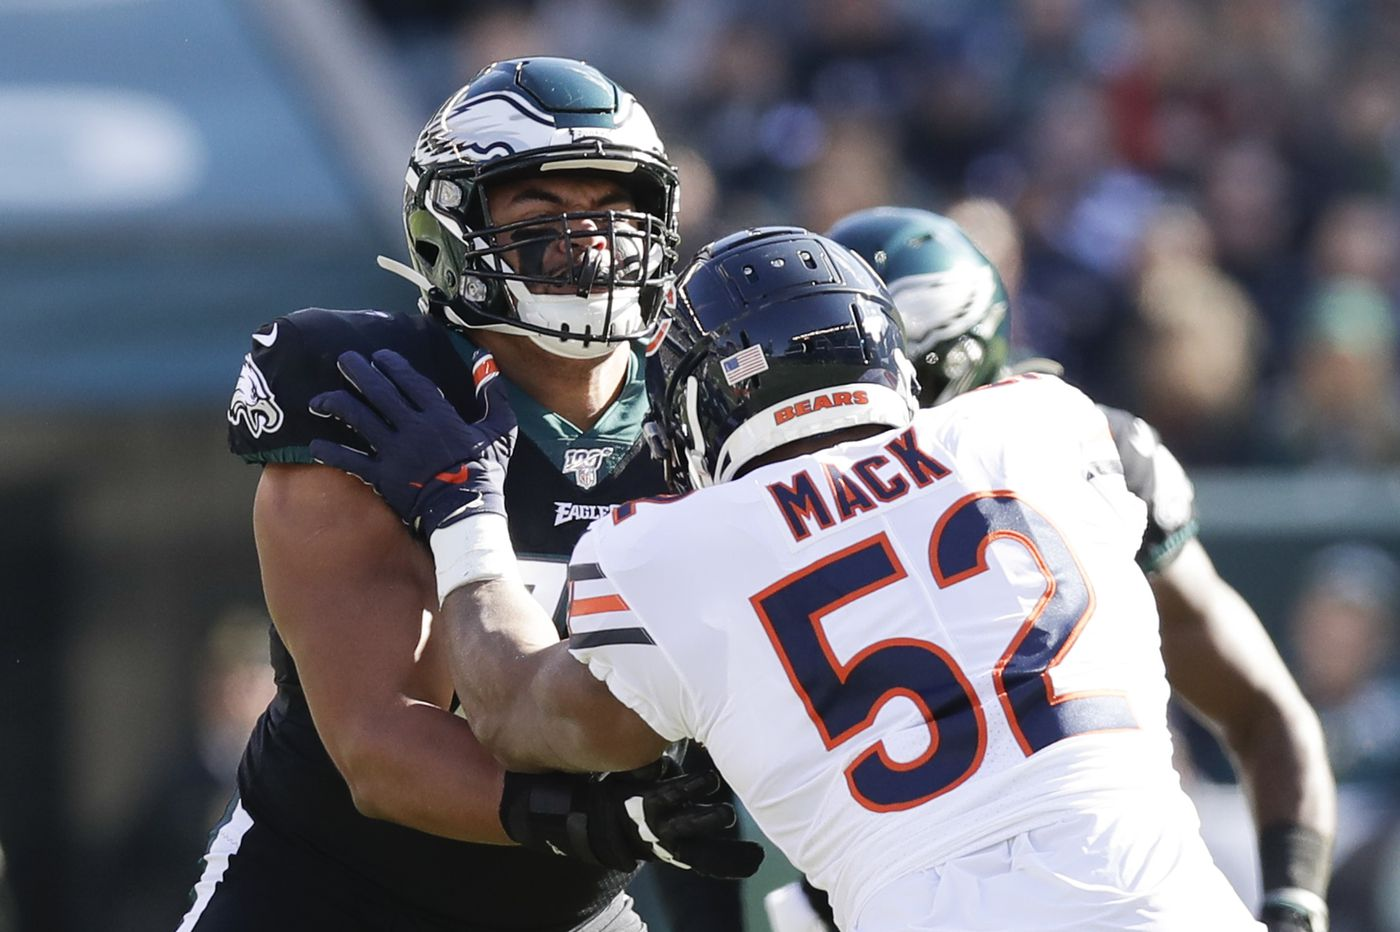 Would Eagles be making a mistake by benching Andre Dillard and putting Jason Peters back at left tackle?